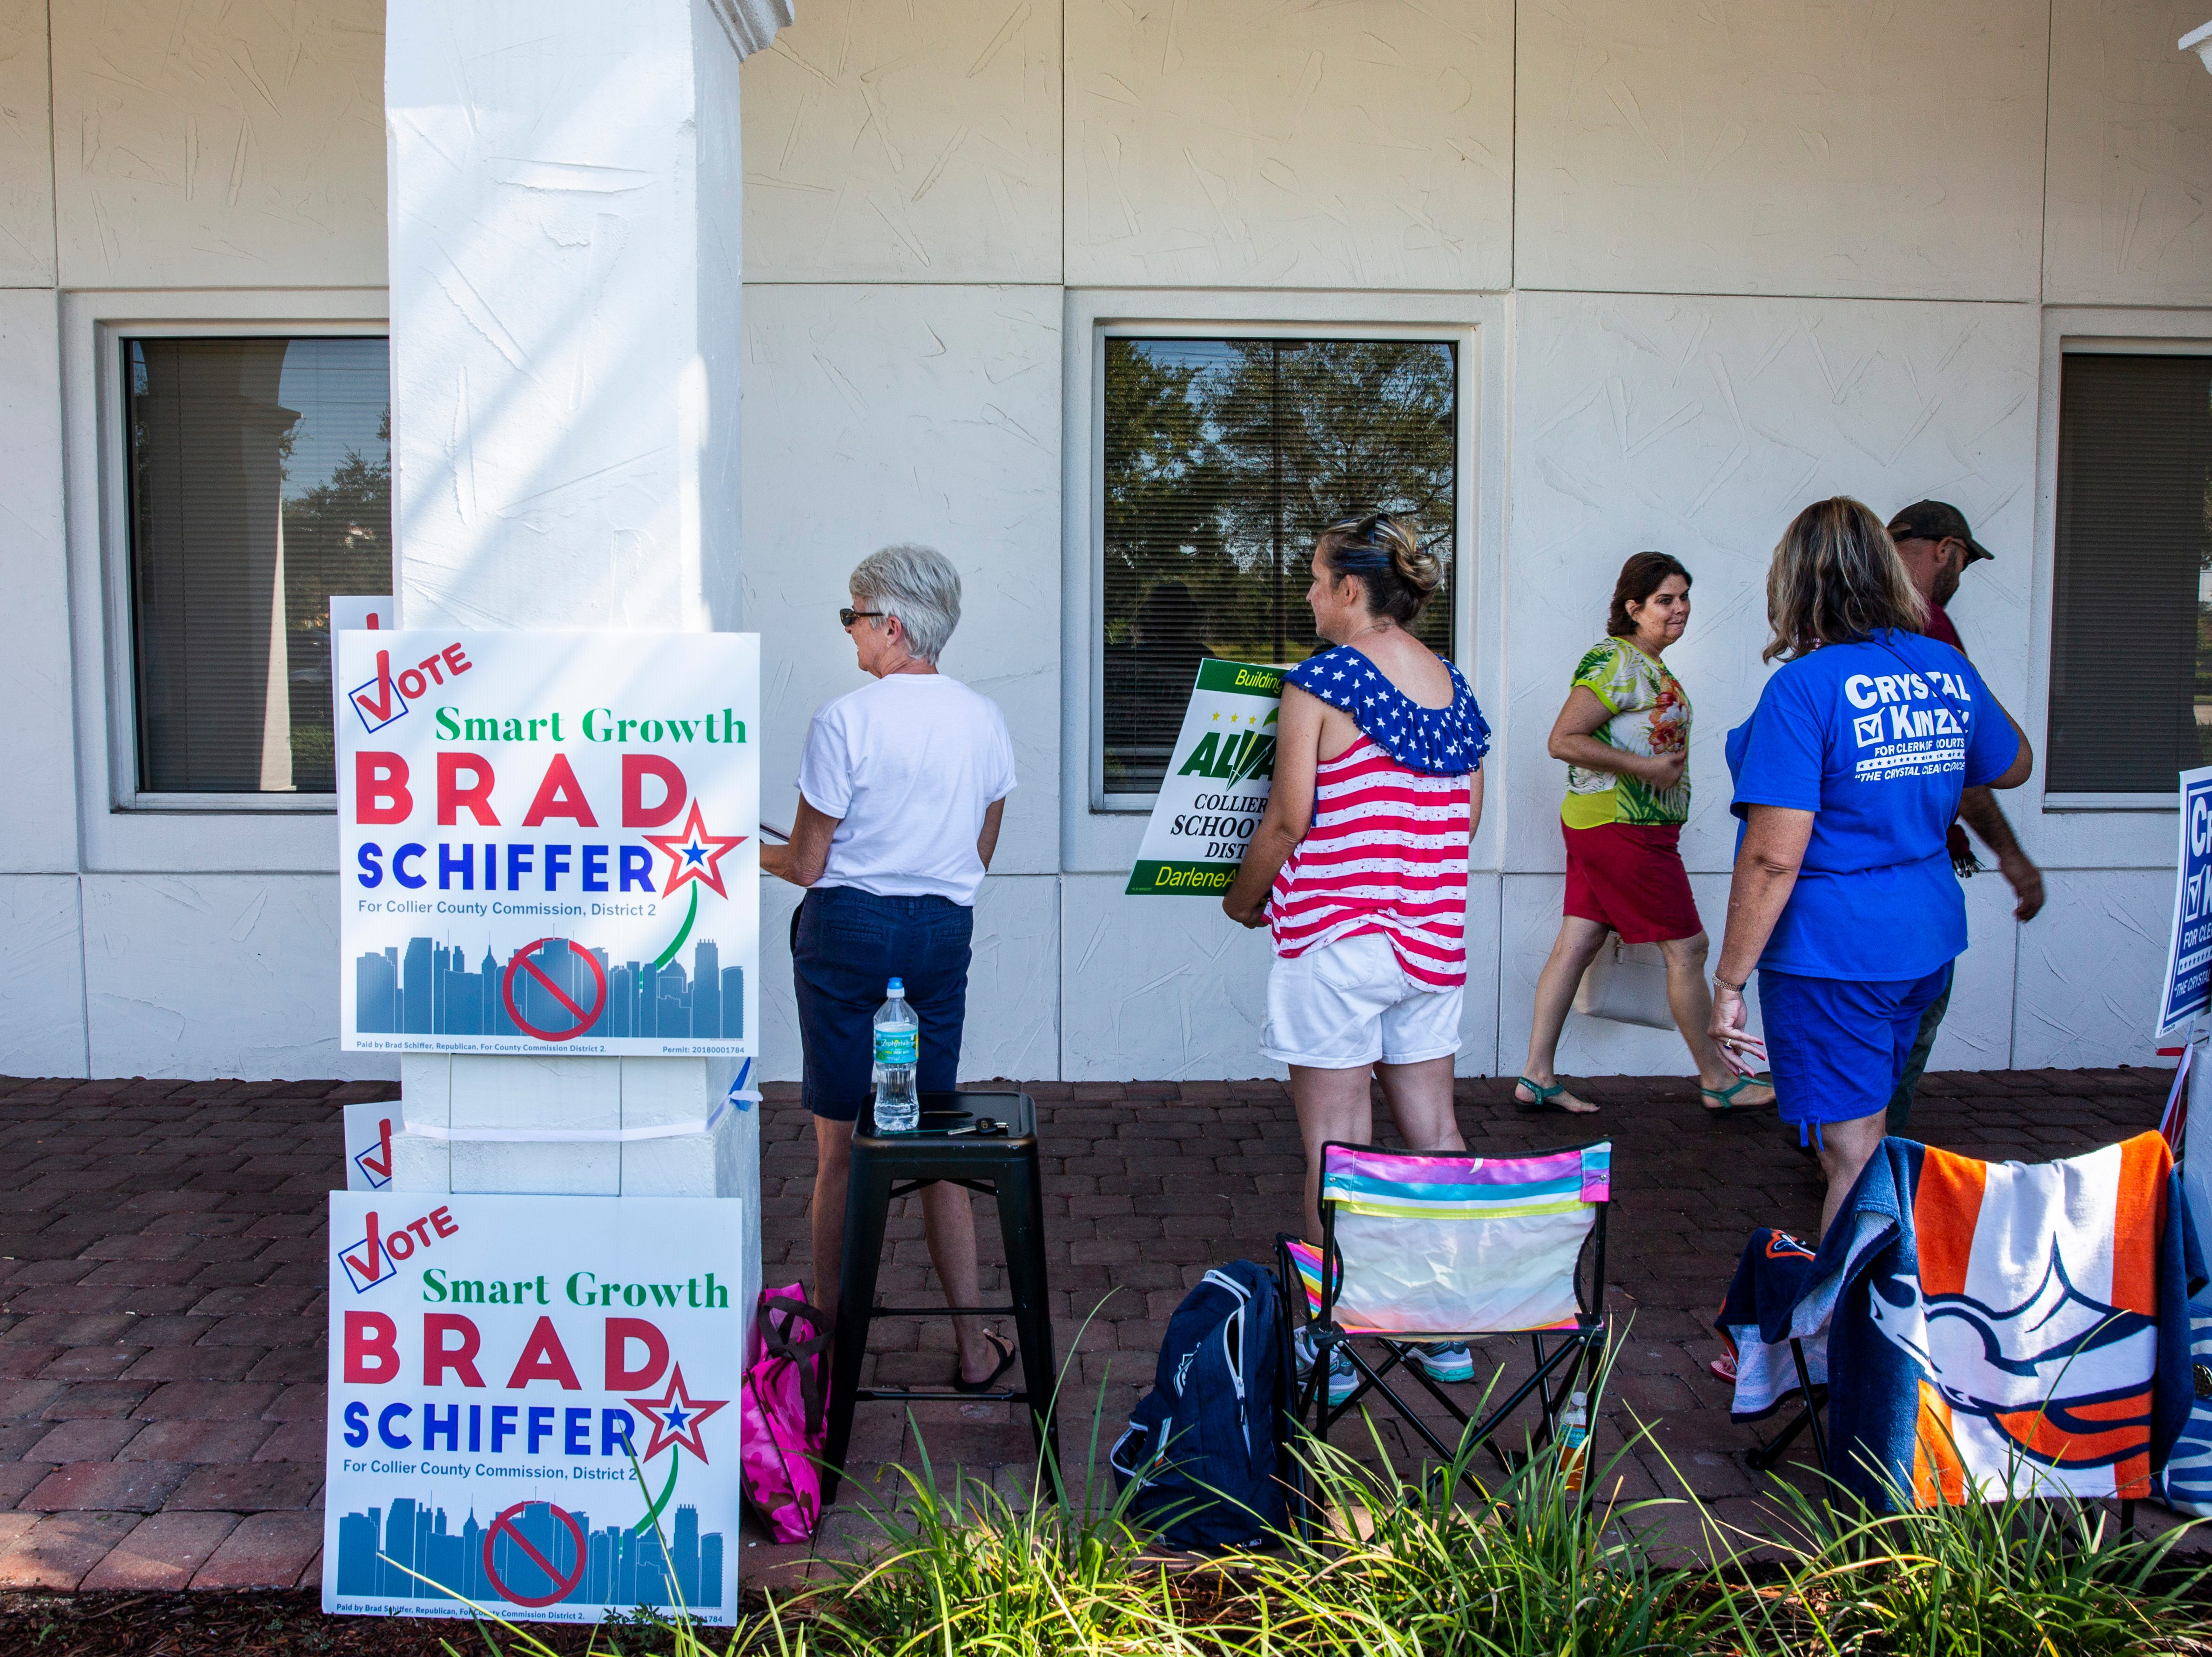 Incoming voters walk through the solicitation zone as Robin Sheley, from right, Courtney Hemmer and Donna Caron encourage them to cast their ballot for their respective candidates at the Collier County Public Library Headquarters in North Naples on Tuesday, August 28, 2018.